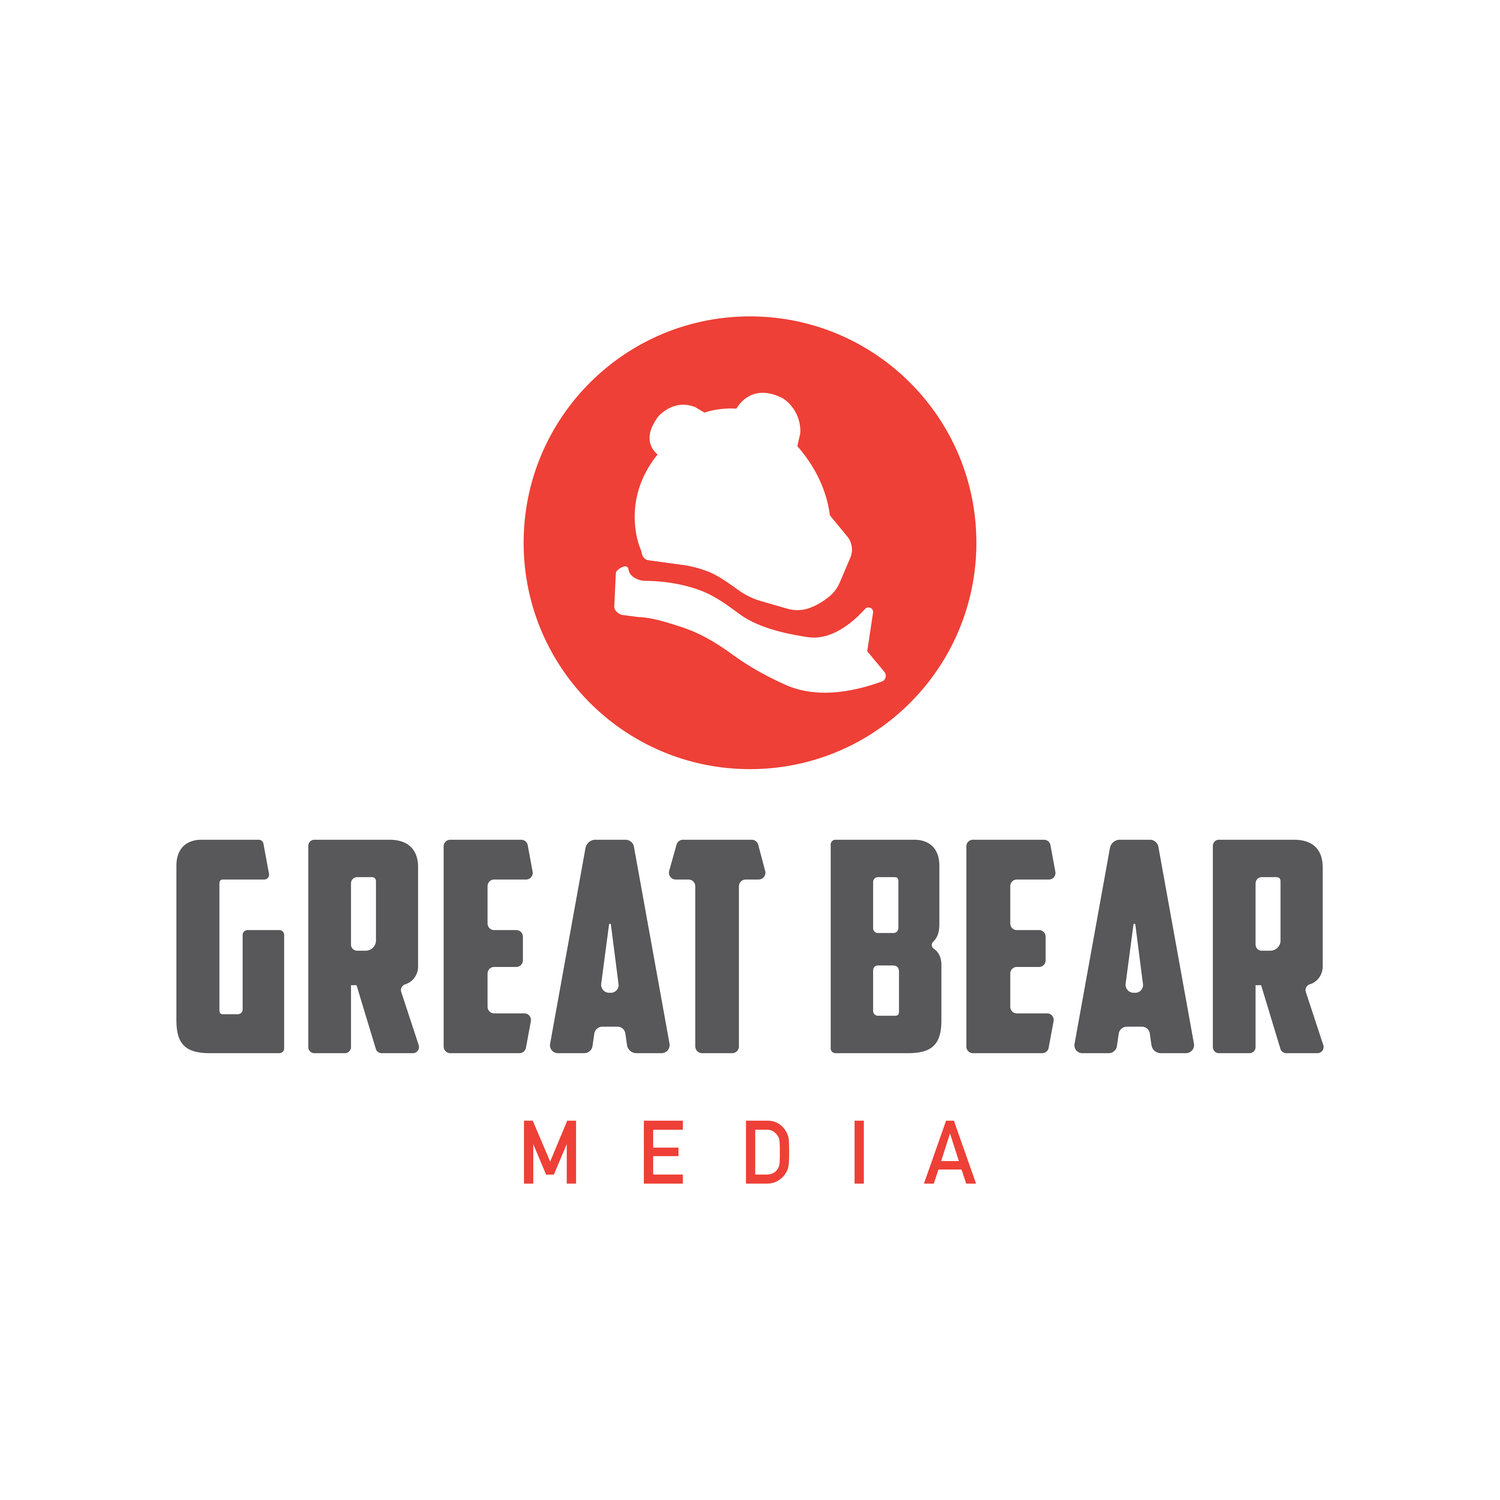 Great Bear Media